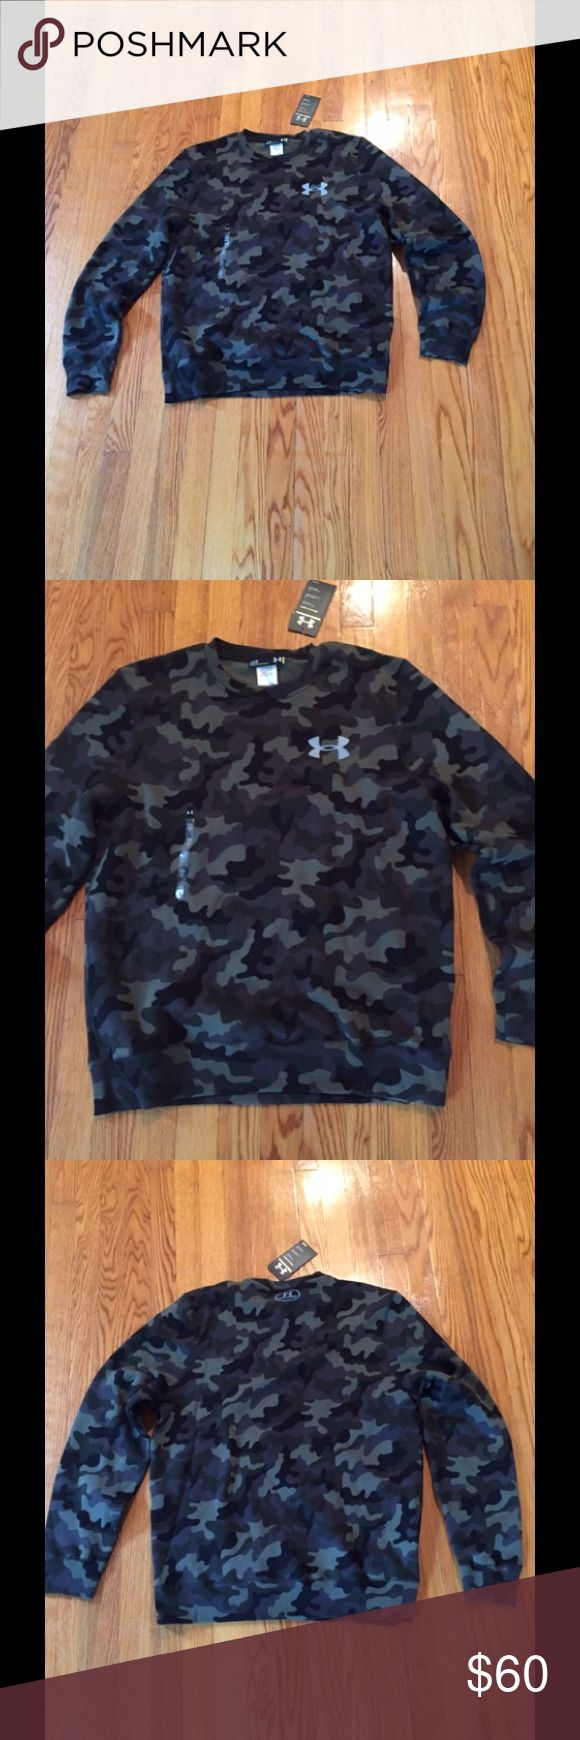 New Under Armour Camouflage Sweatshirt New Under Armour Camouflage Sweatshirt. Size: Large (men).   Estimate size for women would be 2xl. Under Armour Sweaters